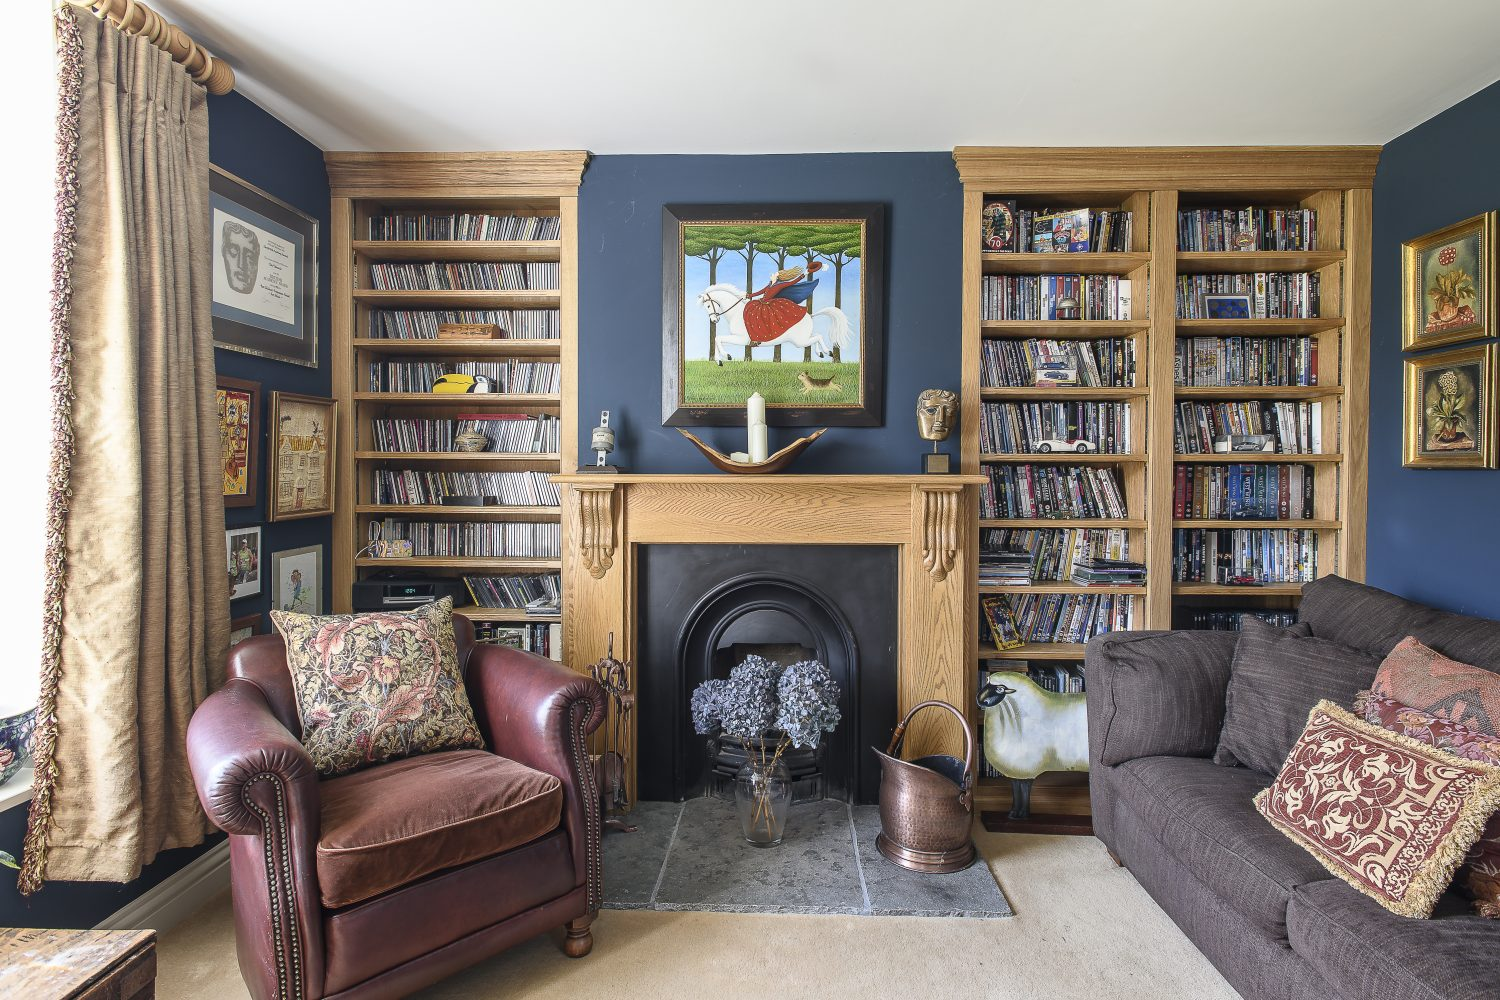 Art is the couple's other passion and is in glorious evidence throughout the house. There are many paintings by favourite artists Richard Adams, the late Anne-Catherine Phillips and Ros Lyons.